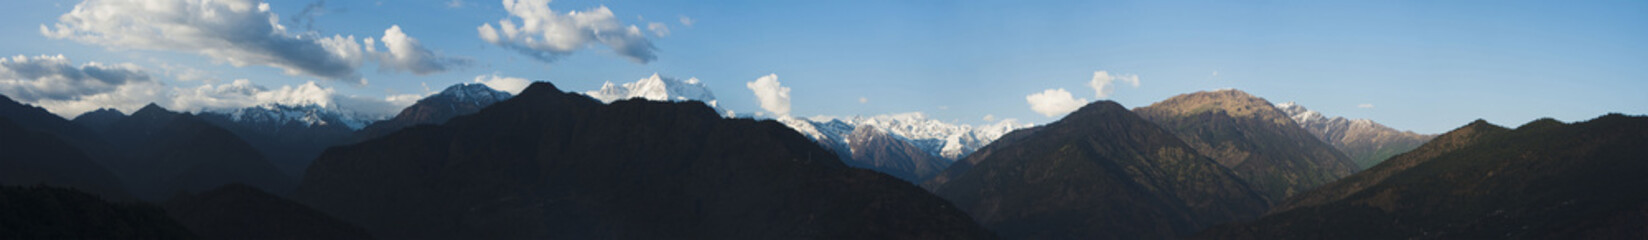 Clouds over the mountains, Himalayas, Uttarakhand, India